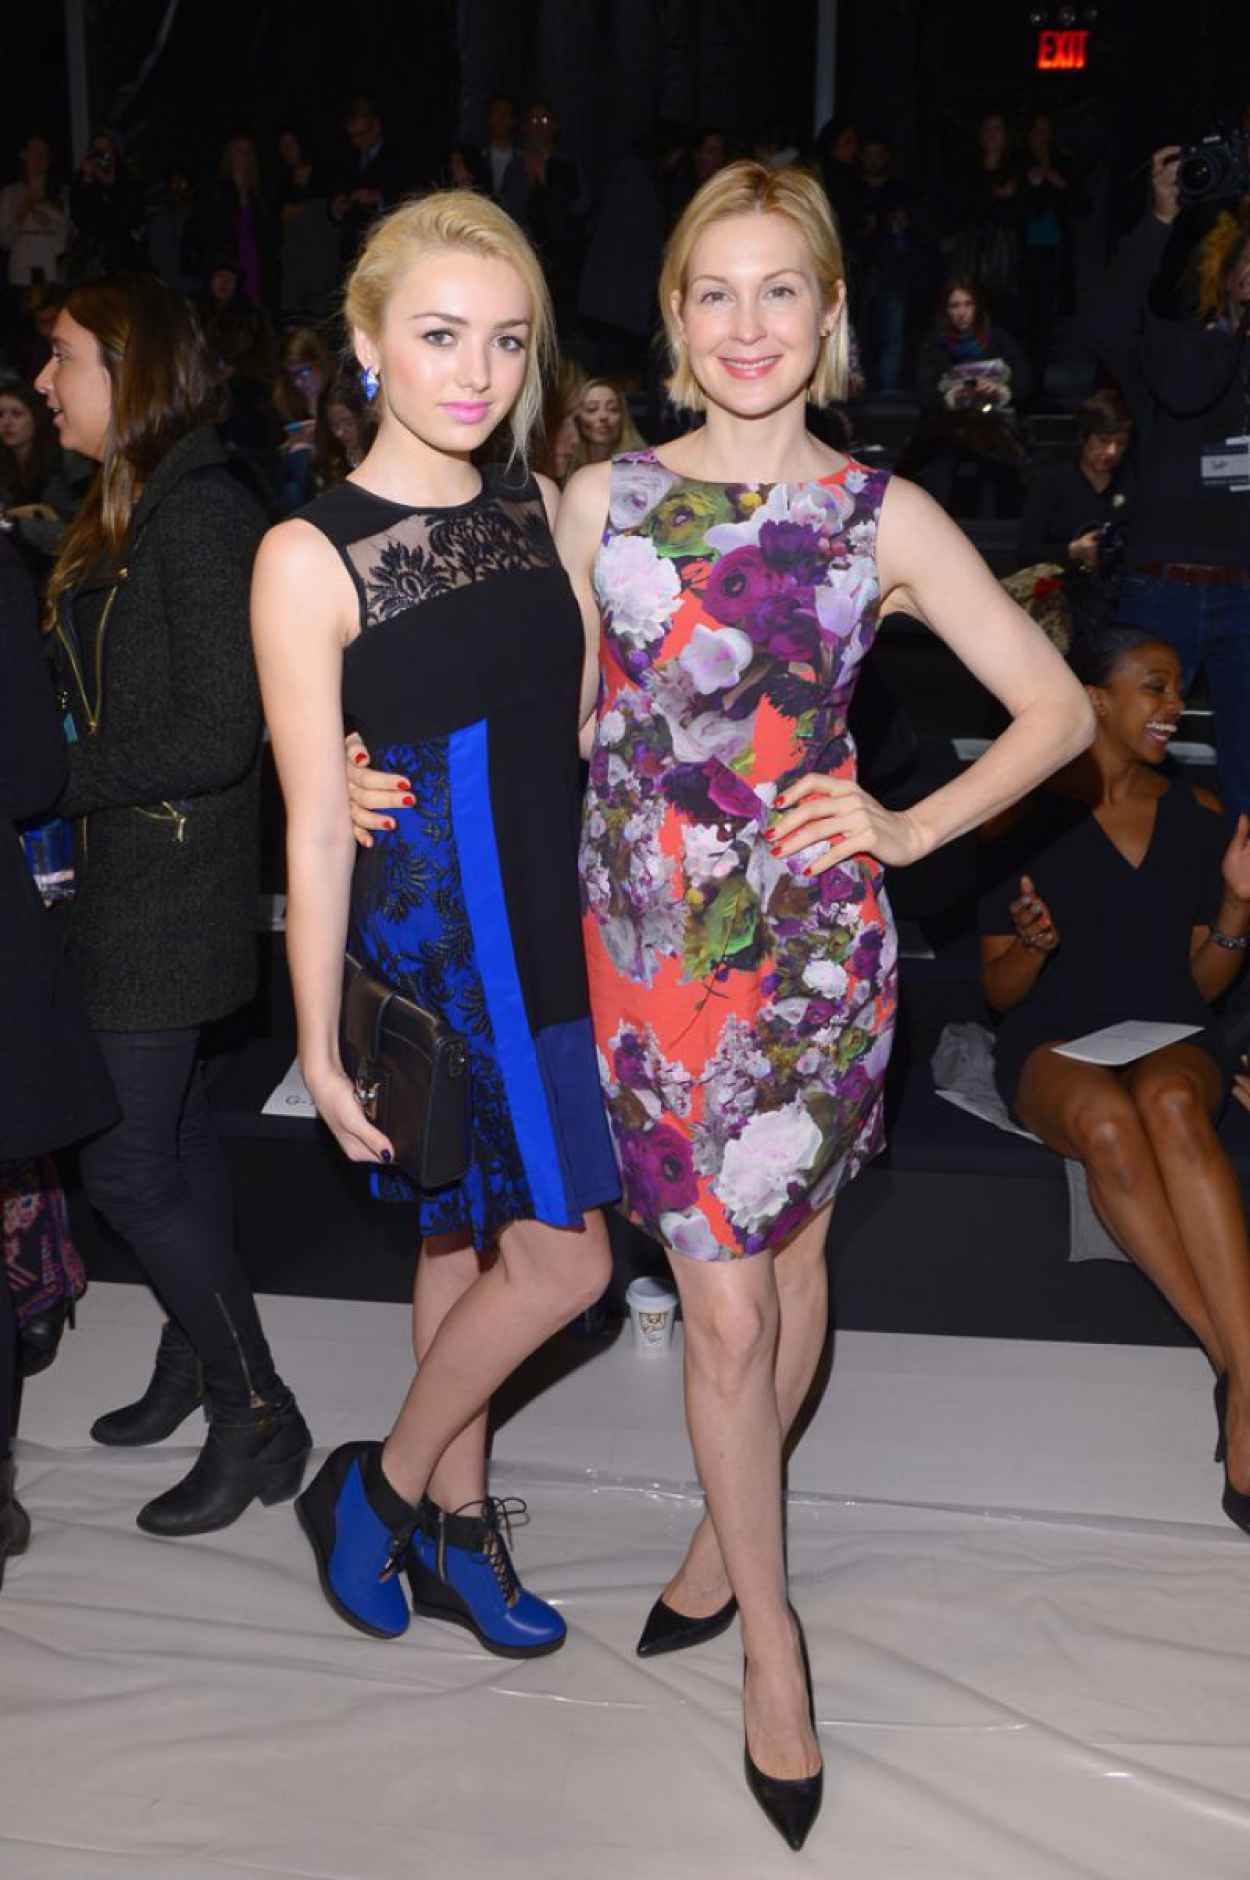 Kelly Rutherford at Nanette Lepore Fashion Show in New York City, Feb. 2015-2